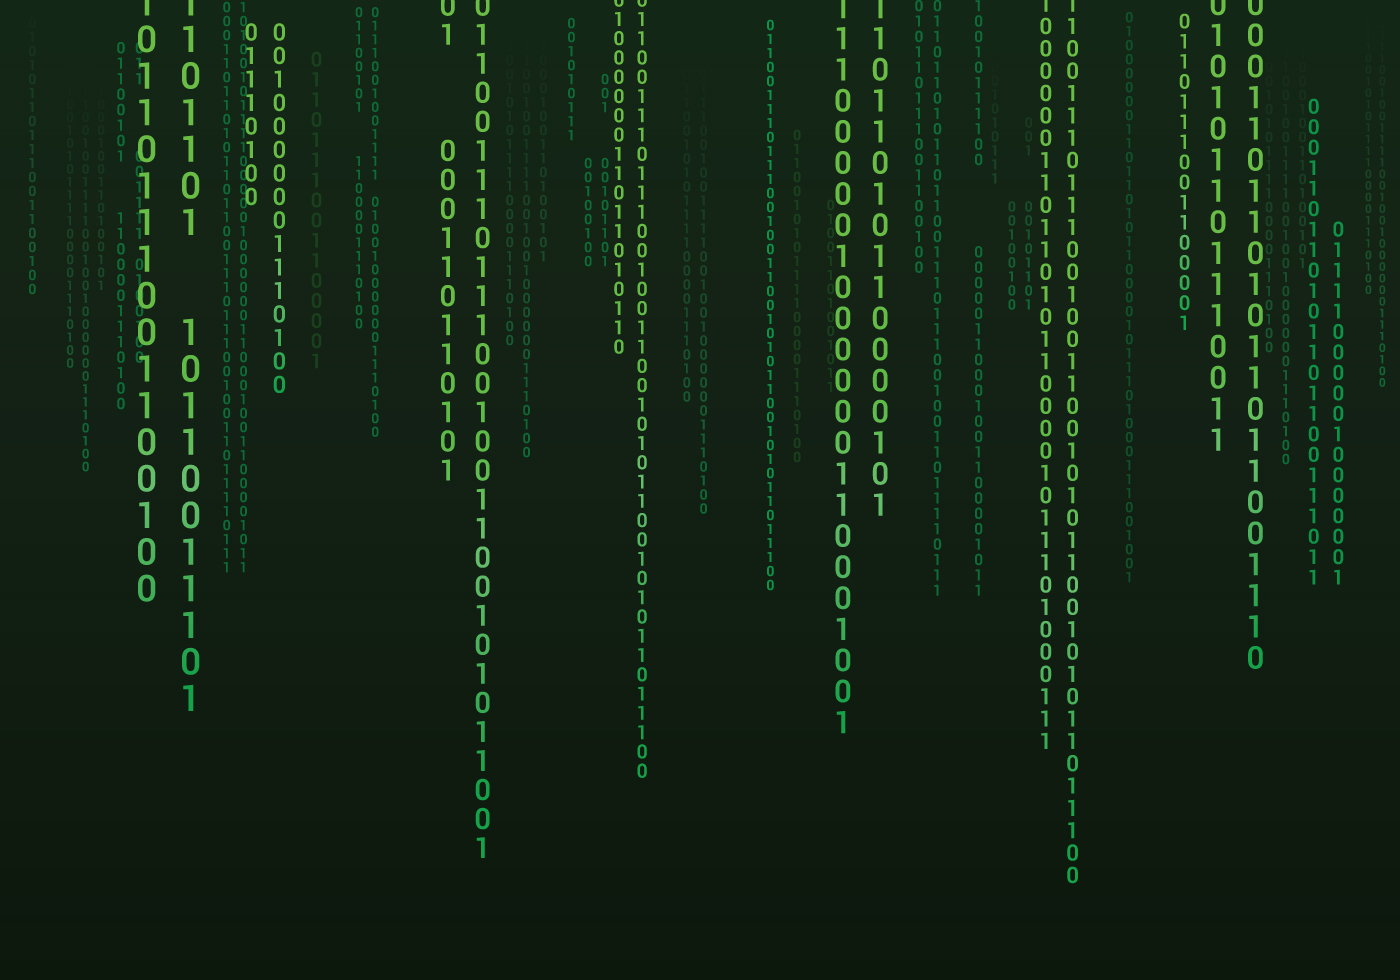 Binary text background download free vector art stock - Binary background gif ...